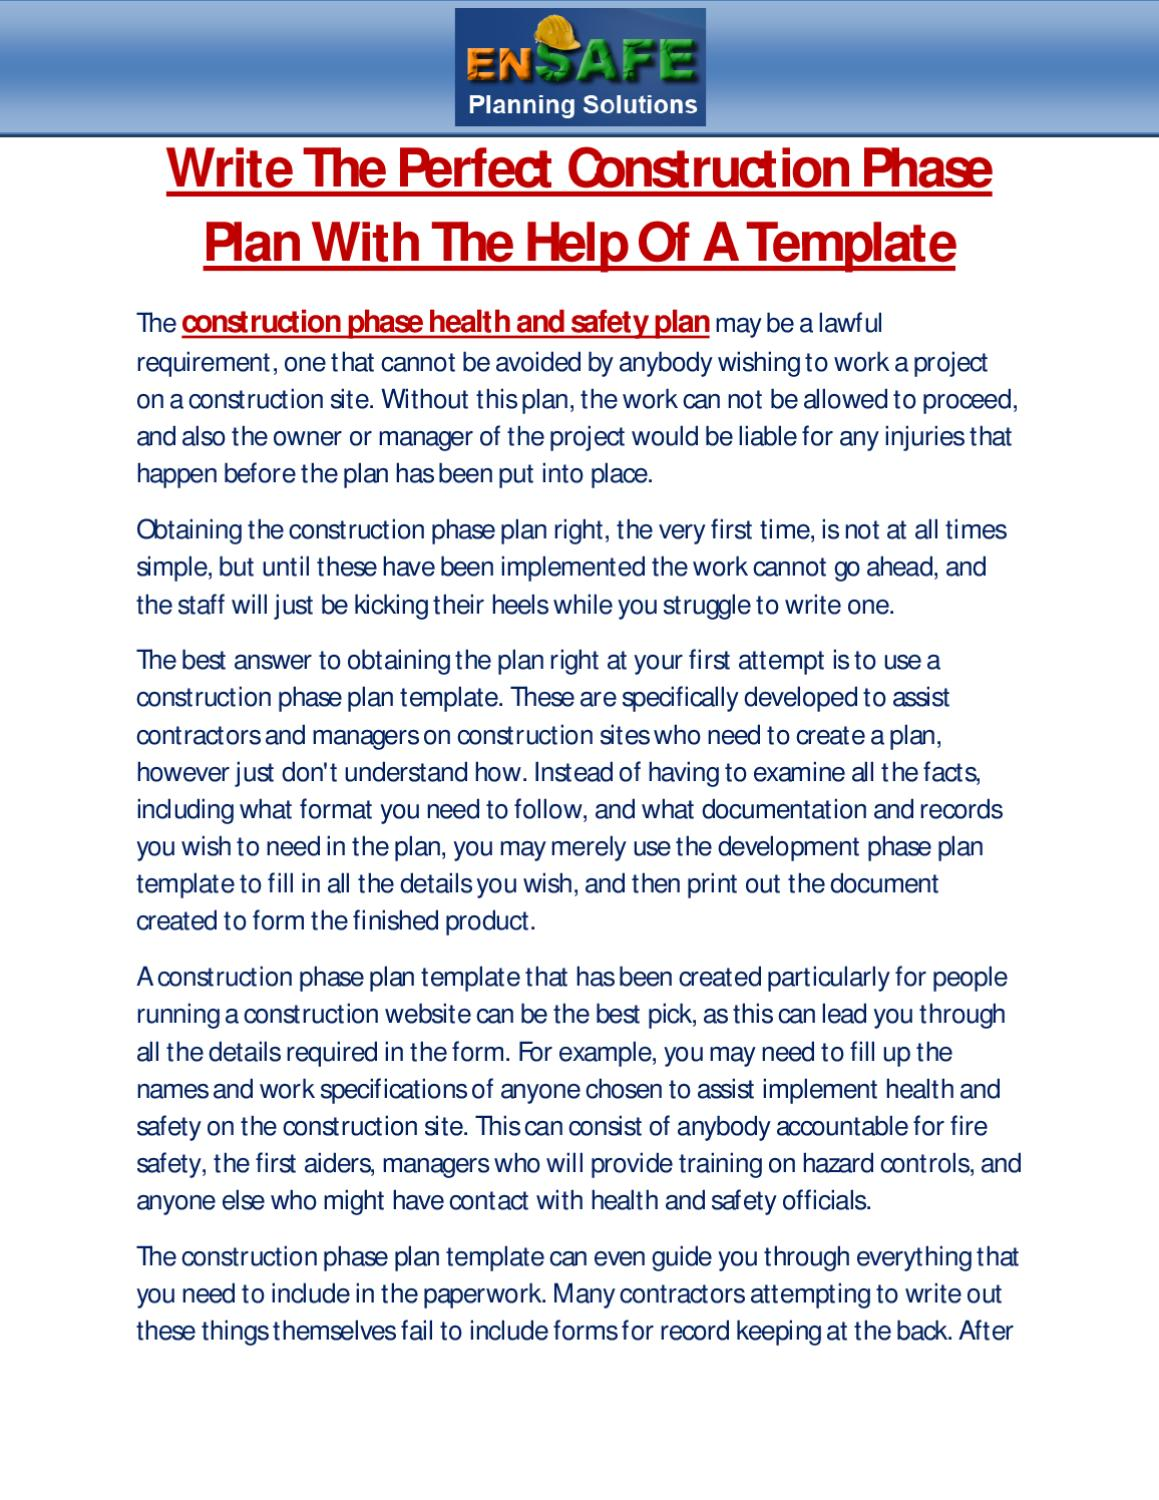 Write The Perfect Construction Phase Plan With The Help Of A Template By Martin Gerardo Issuu